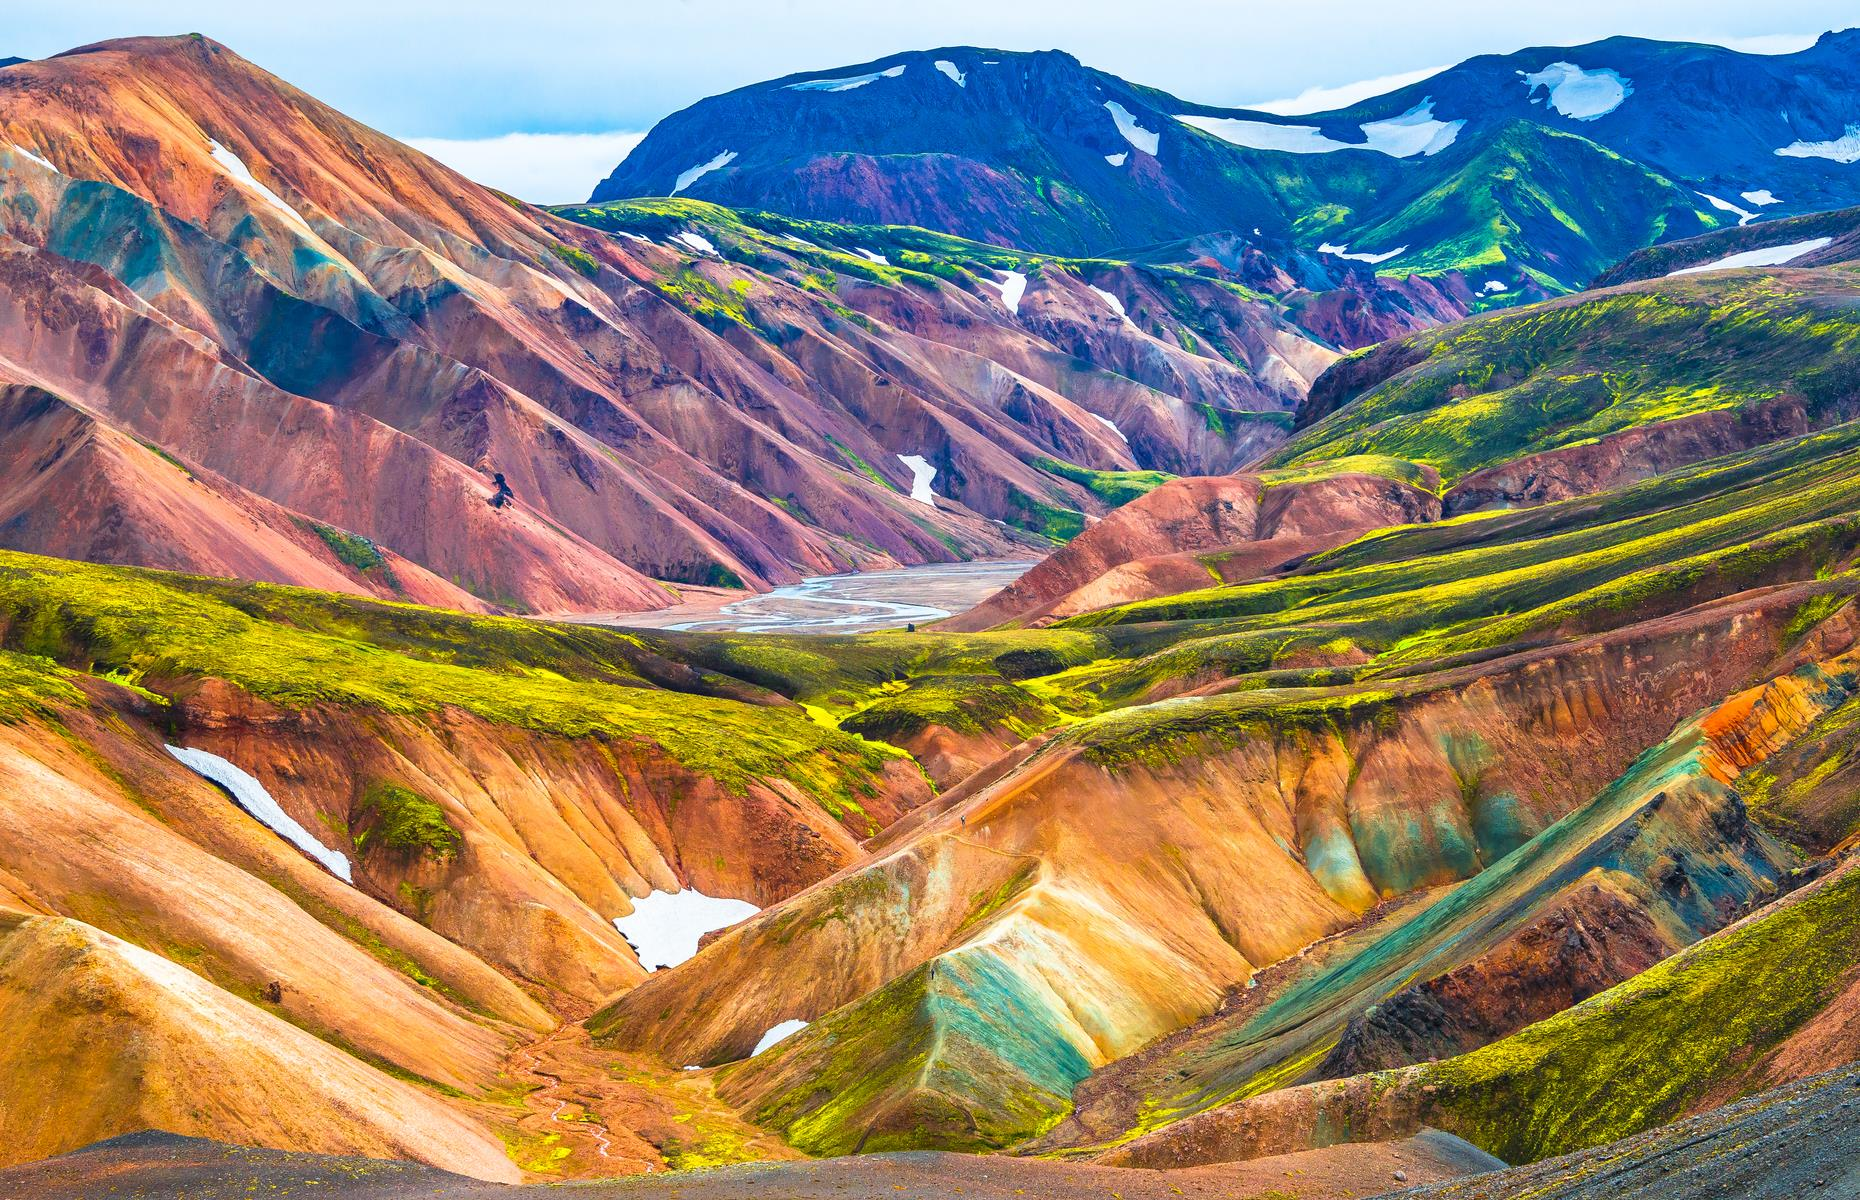 Slide 30 of 41: Deep in the Highlands of Iceland lies Landmannalaugar, a unique, undulating landscape made up of rhyolite crags, lava fields and natural hot springs. The region is favored by hikers who come in summer to admire the colorful mountains (made bright by geological deposits over centuries), and to keep watch for the trolls and elves that purportedly lurk amid the bluffs.